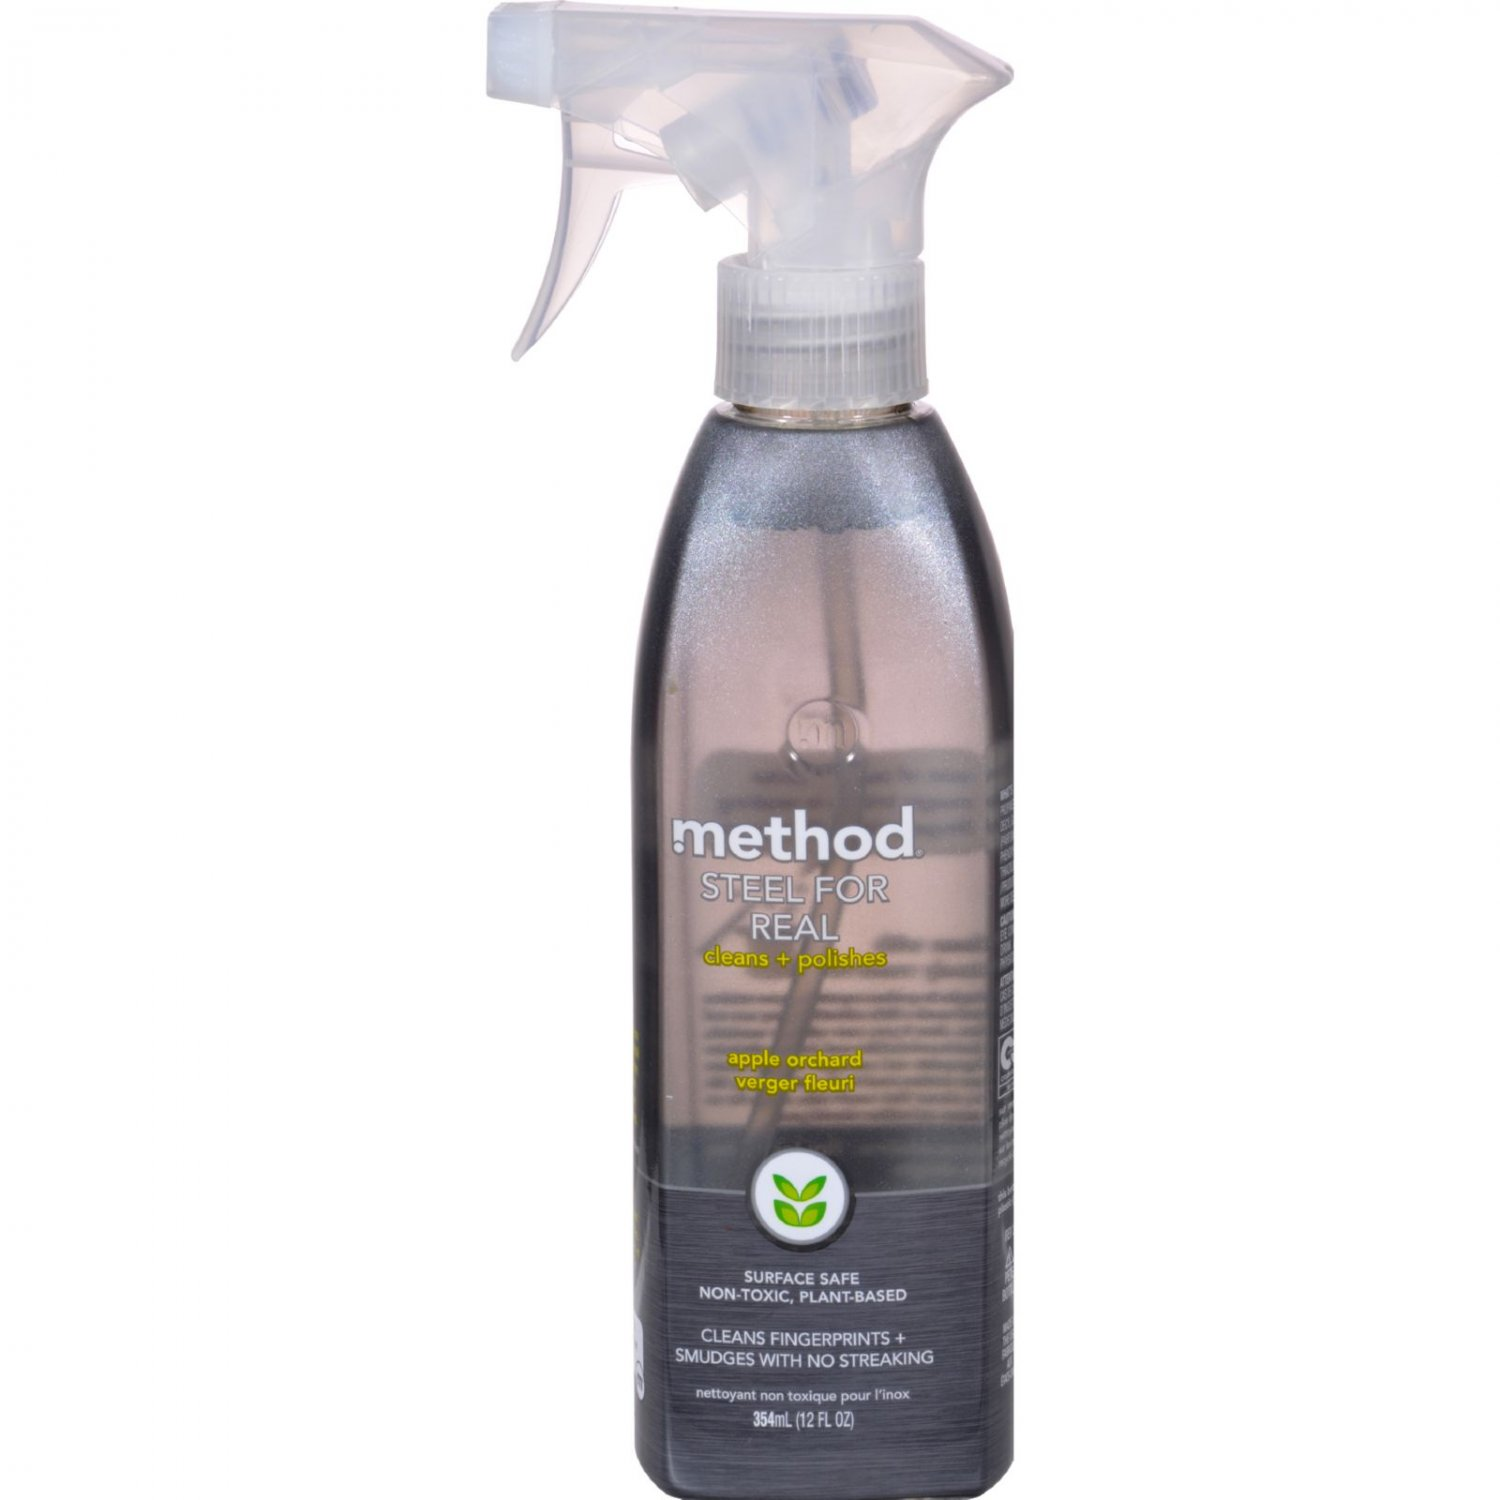 Method Products Stainless Steel Polish - Steel for Real - 12 oz - Case of 6